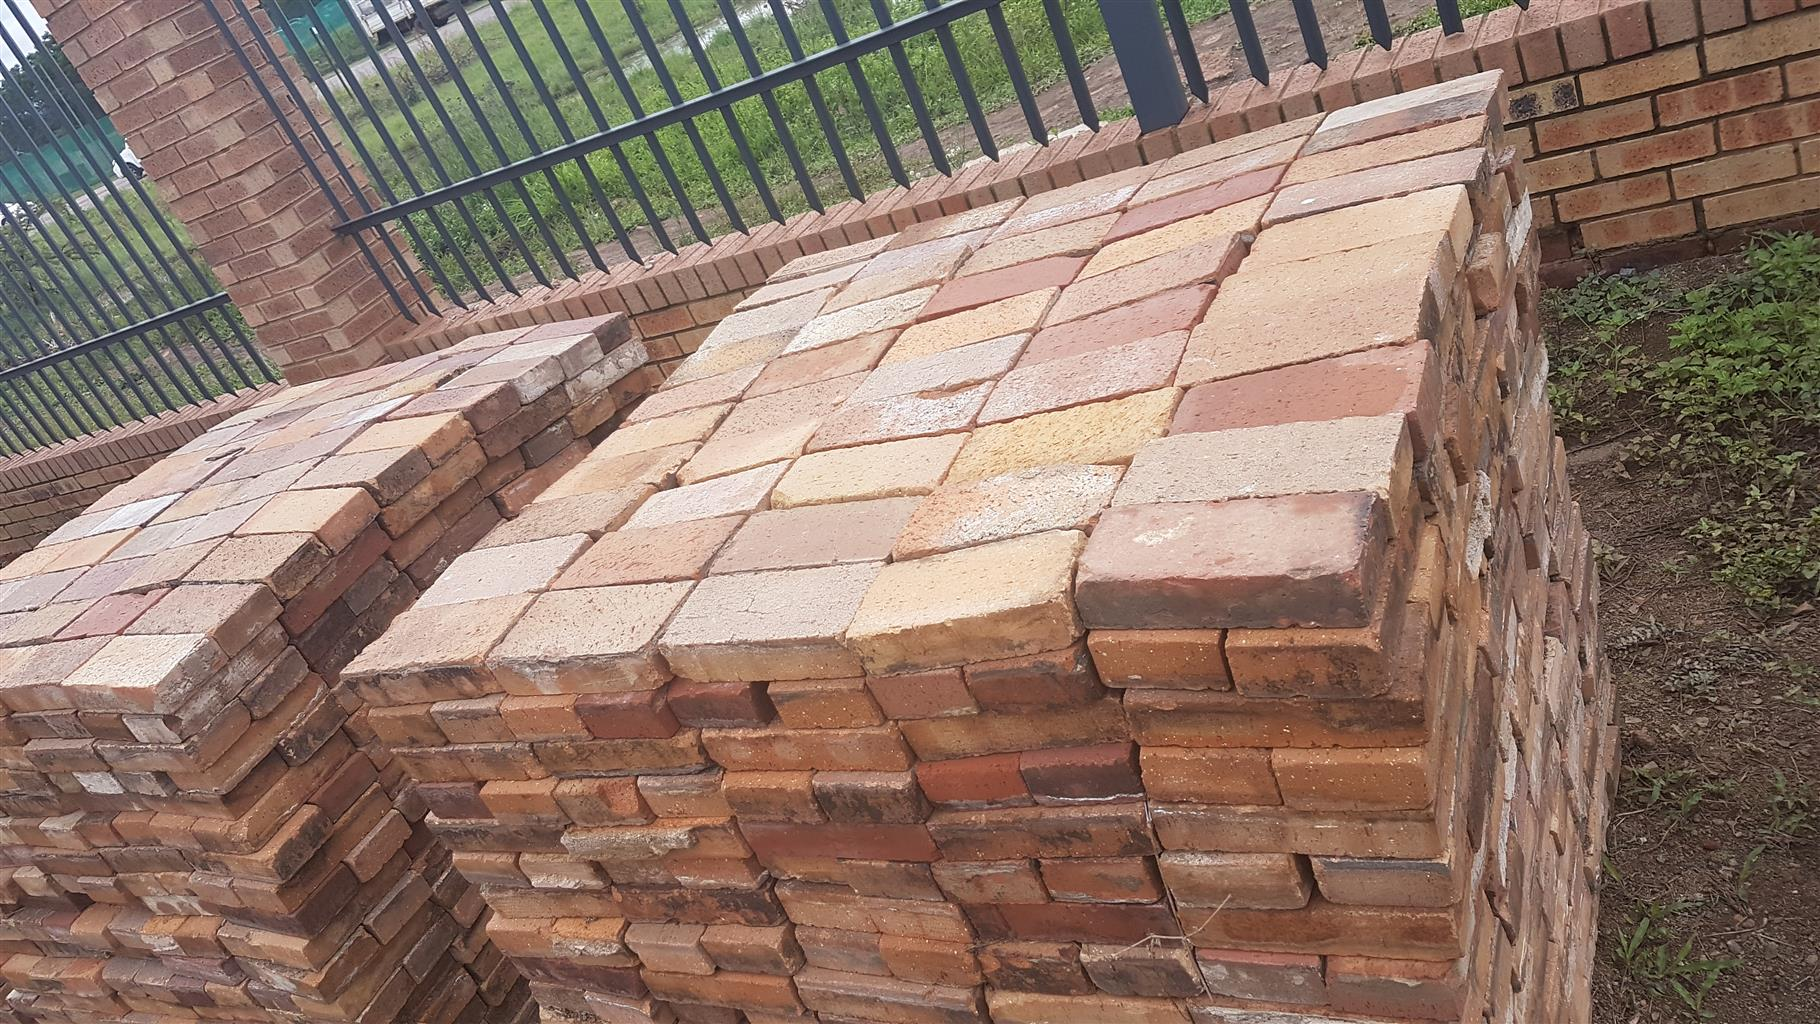 Paving bricks clay used for sale